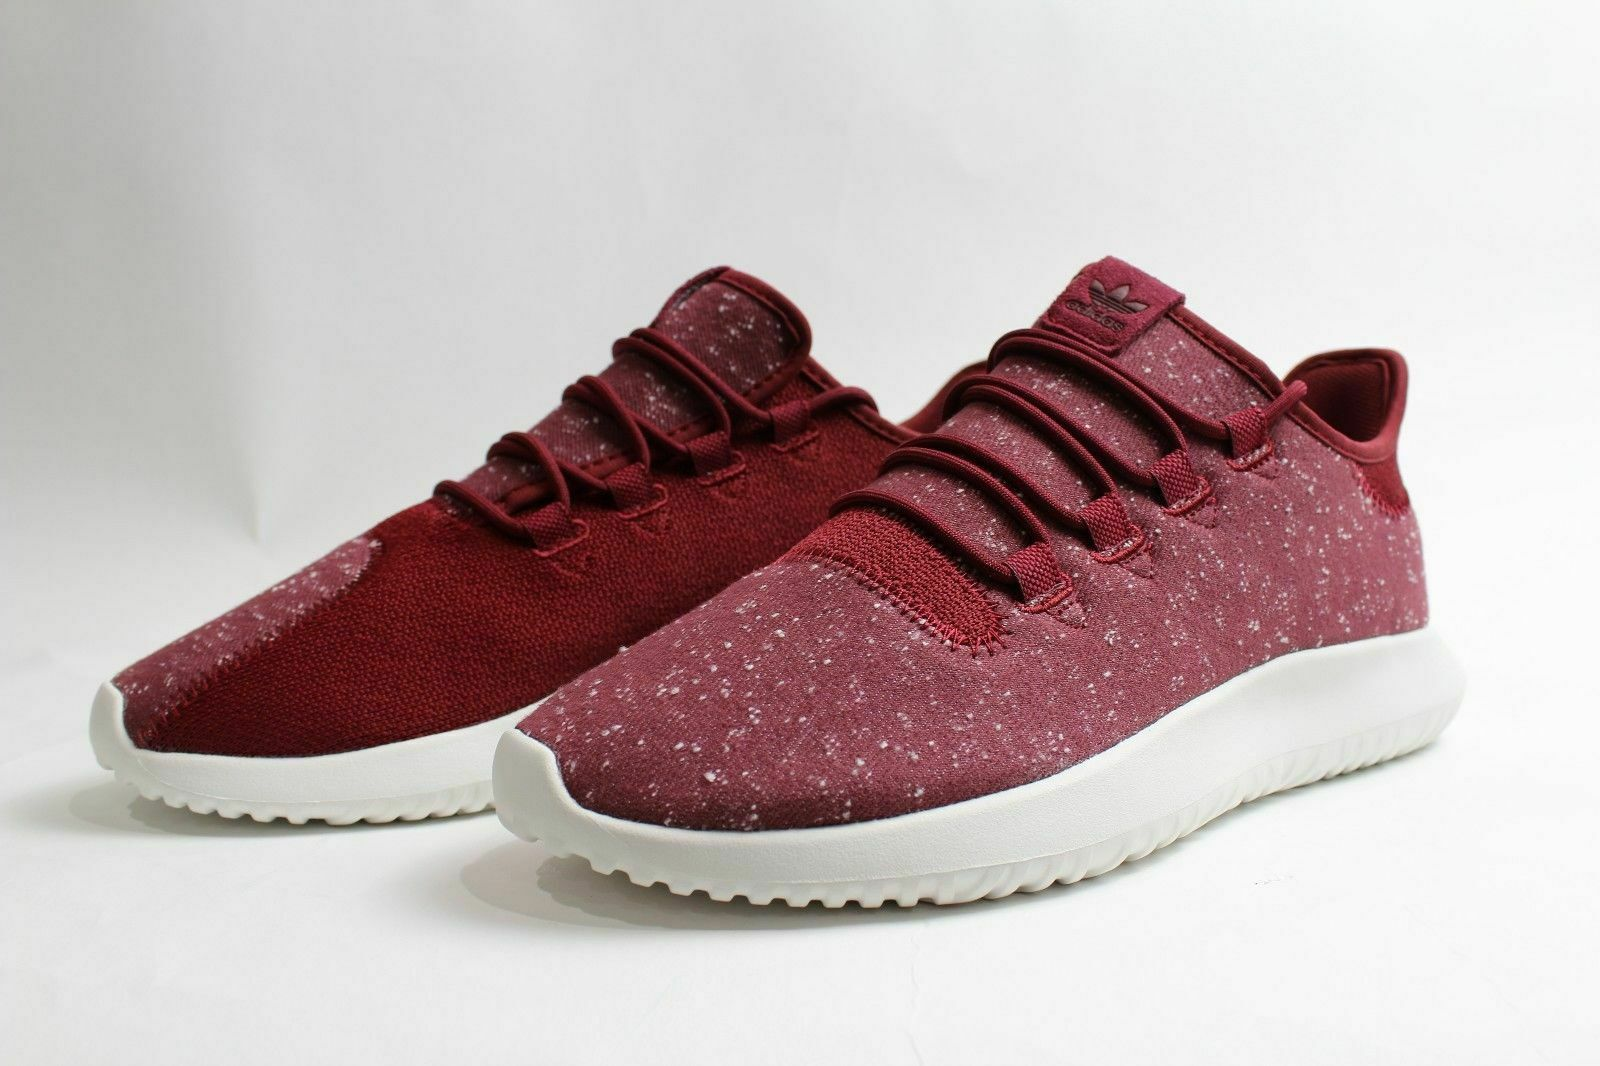 Adidas  BY3571 Men Originals Tubular Shadow Burgundy White Casual shoes Size 9.5